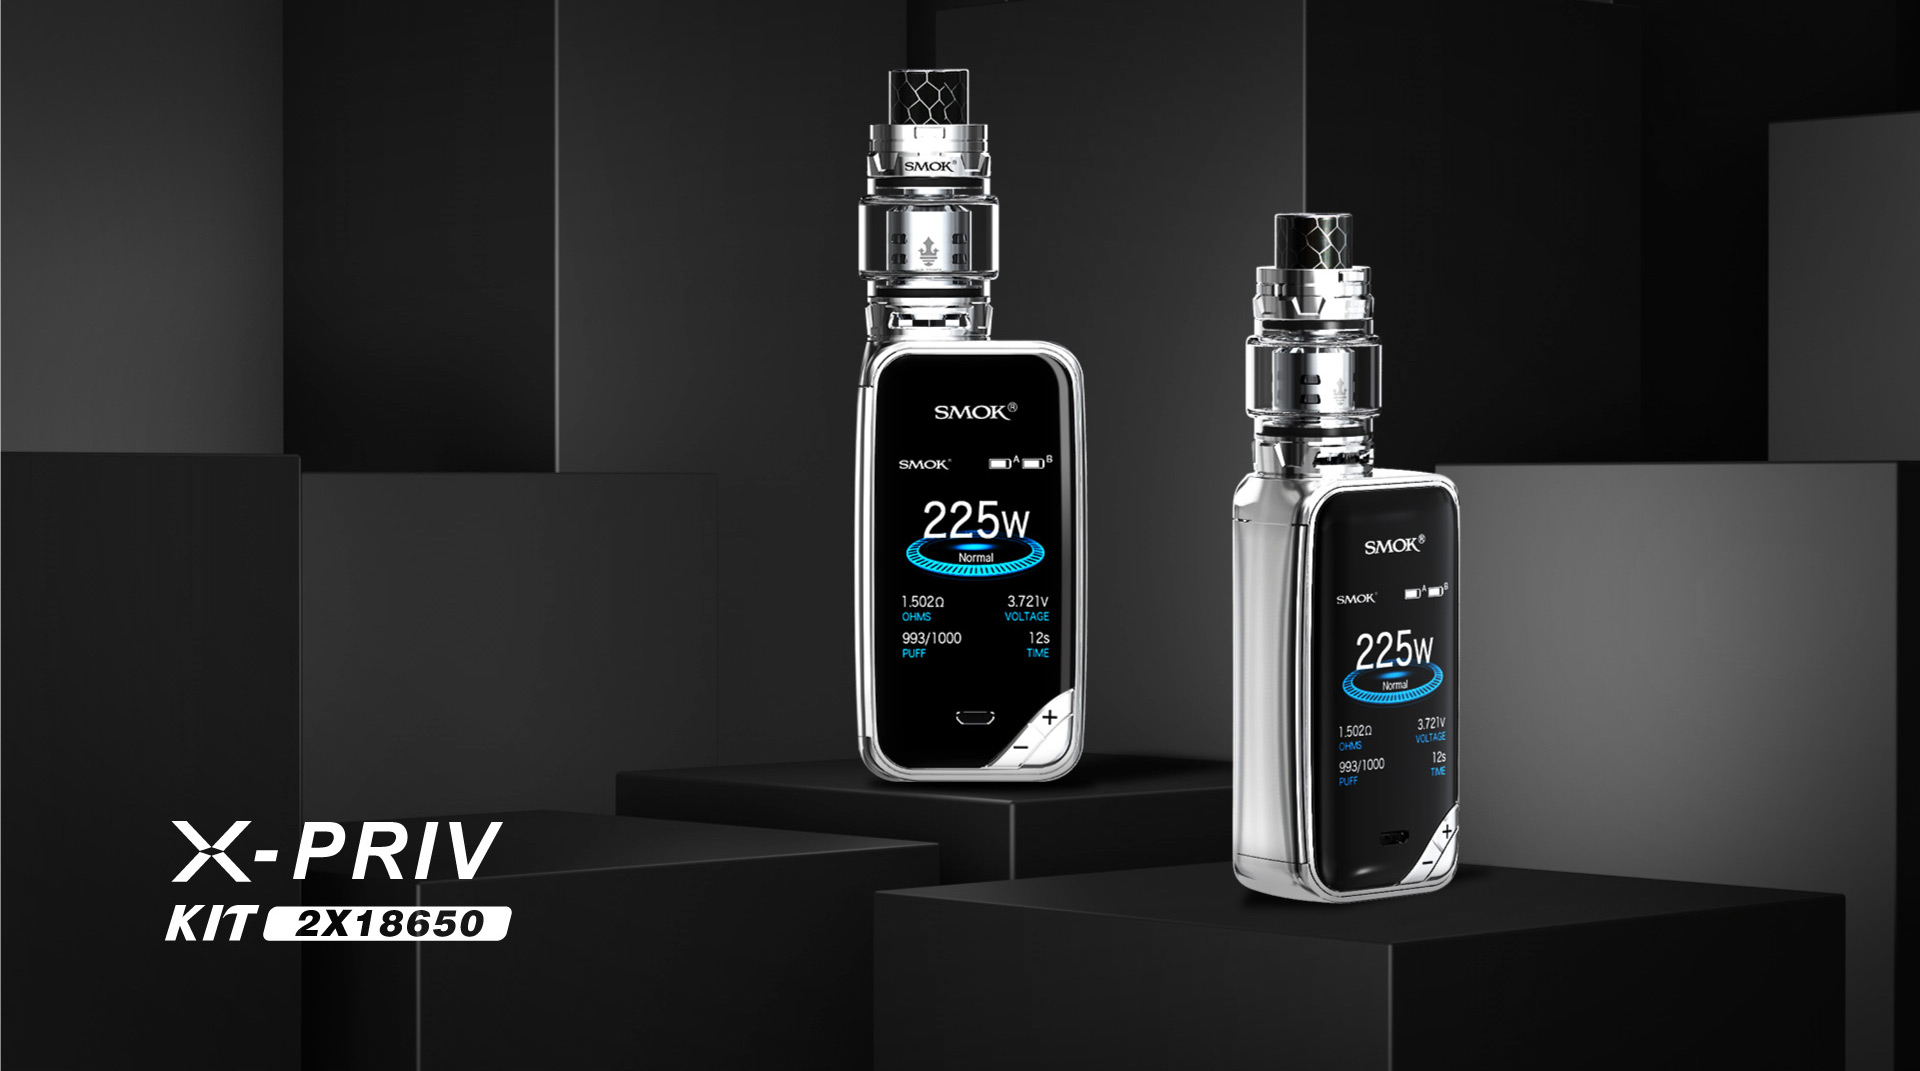 X-Priv Kit - SMOK® Innovation keeps changing the vaping experience!